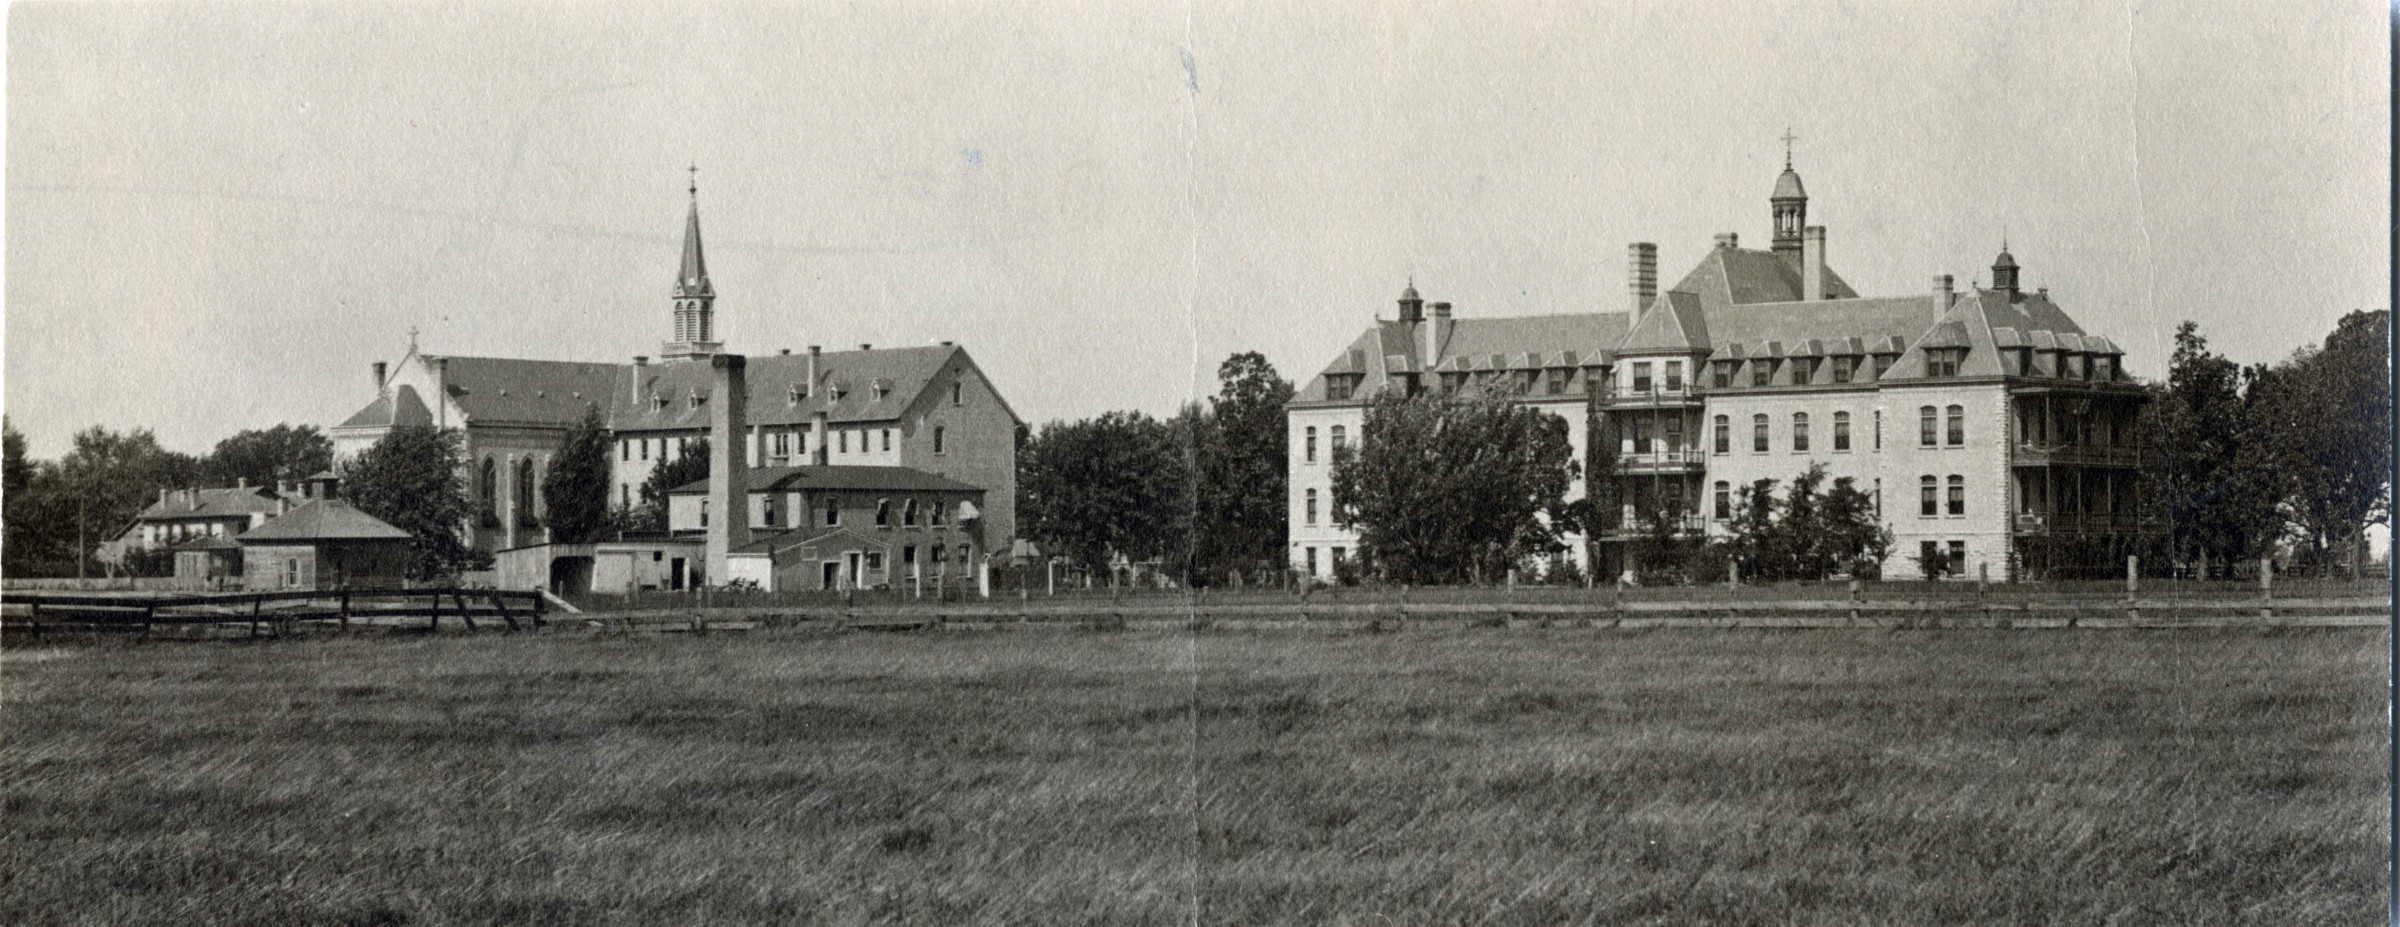 Panoramic view showing St. Agnes Hospital on the right, the convent in the center, and the two-story frame house that served as the original motherhouse on the far left.